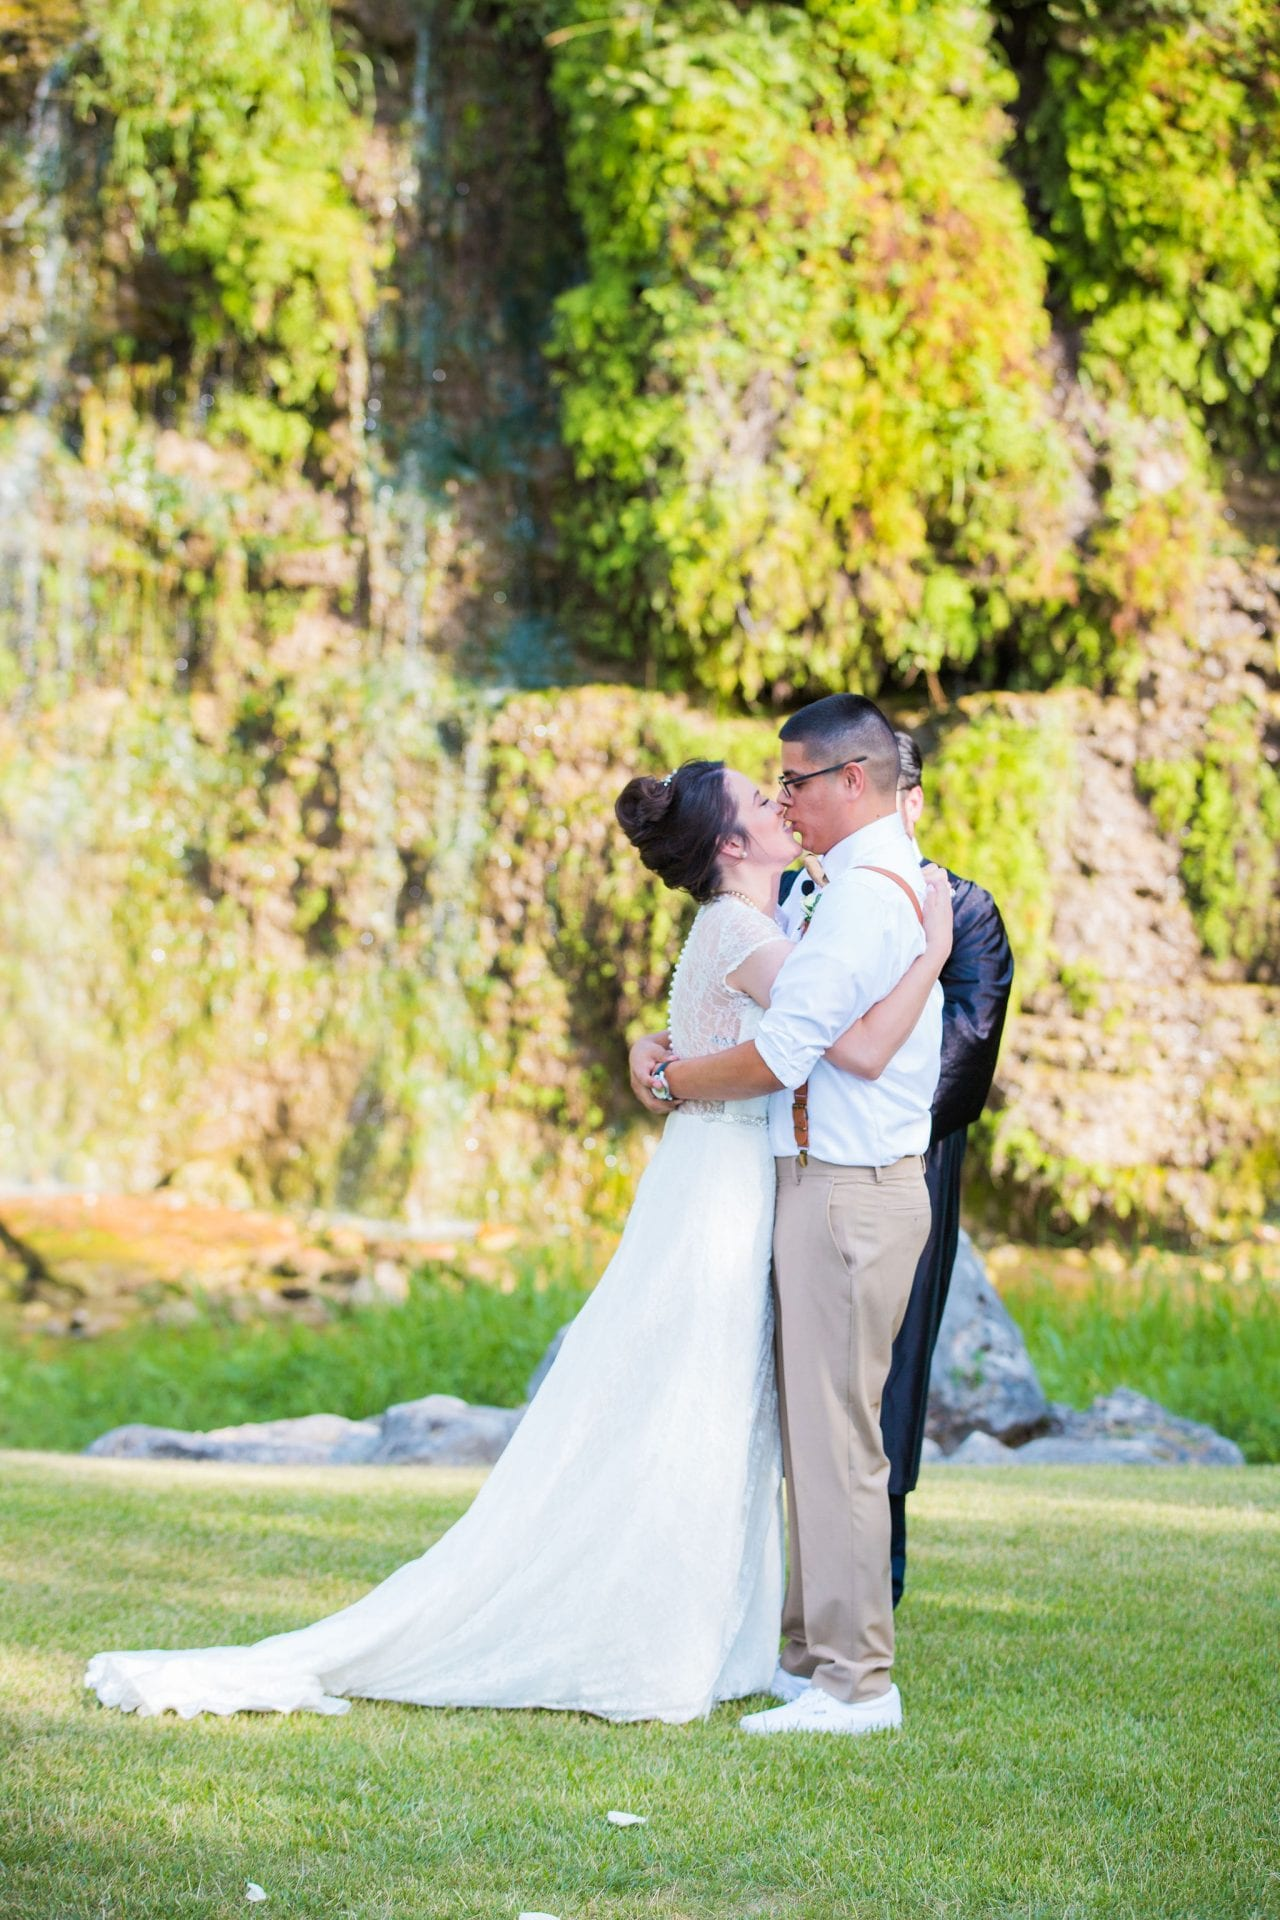 Aamber wedding Canyon Springs Golf Course the kiss